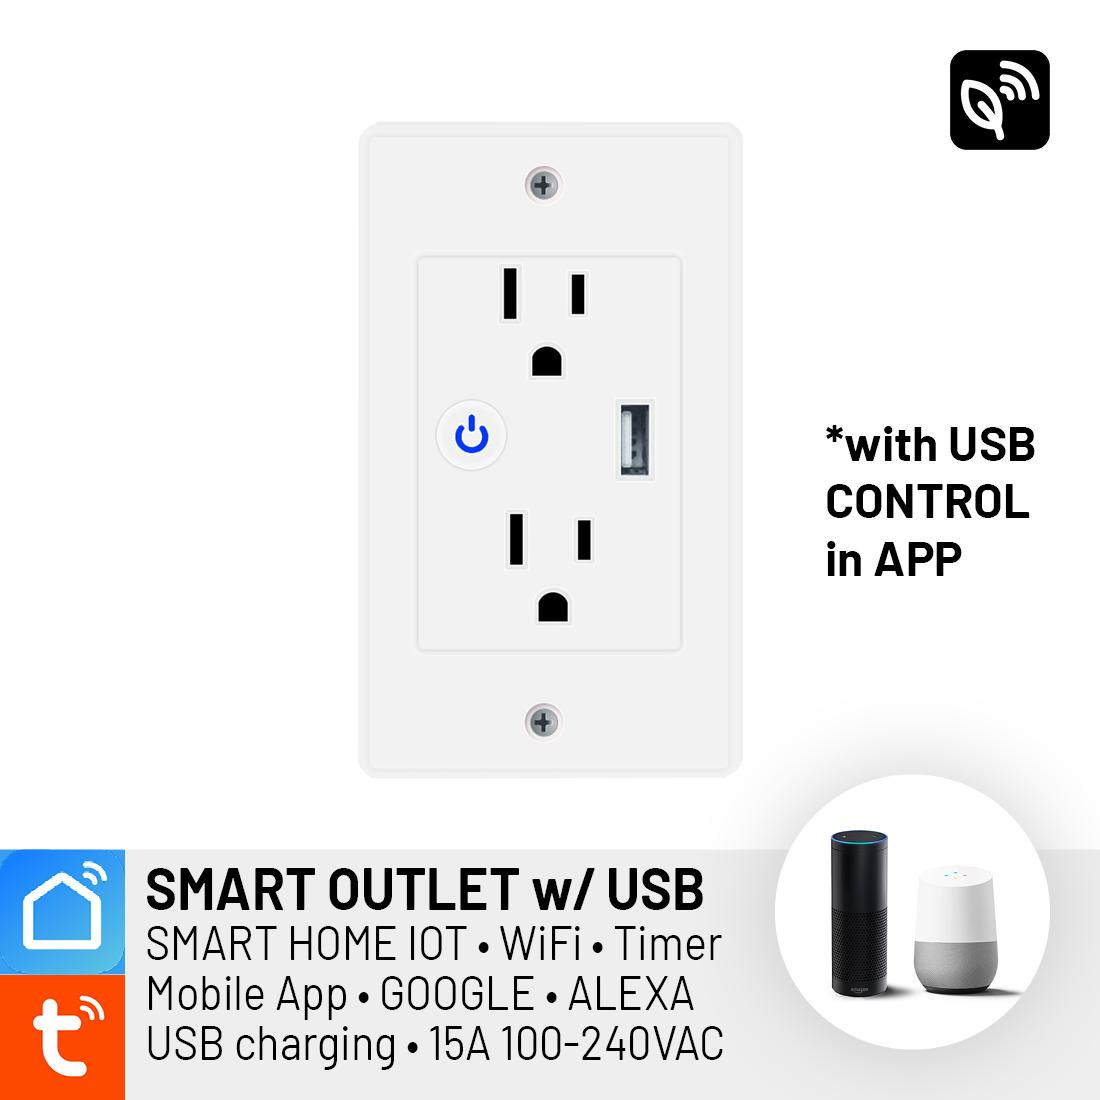 SMART WIFI Wall Socket Outlet Plug 220V 10A with USB App Control - Smart  Home Automation IOT, Voice Control Command (Google, Alexa, IFTTT), TUYA  SMART